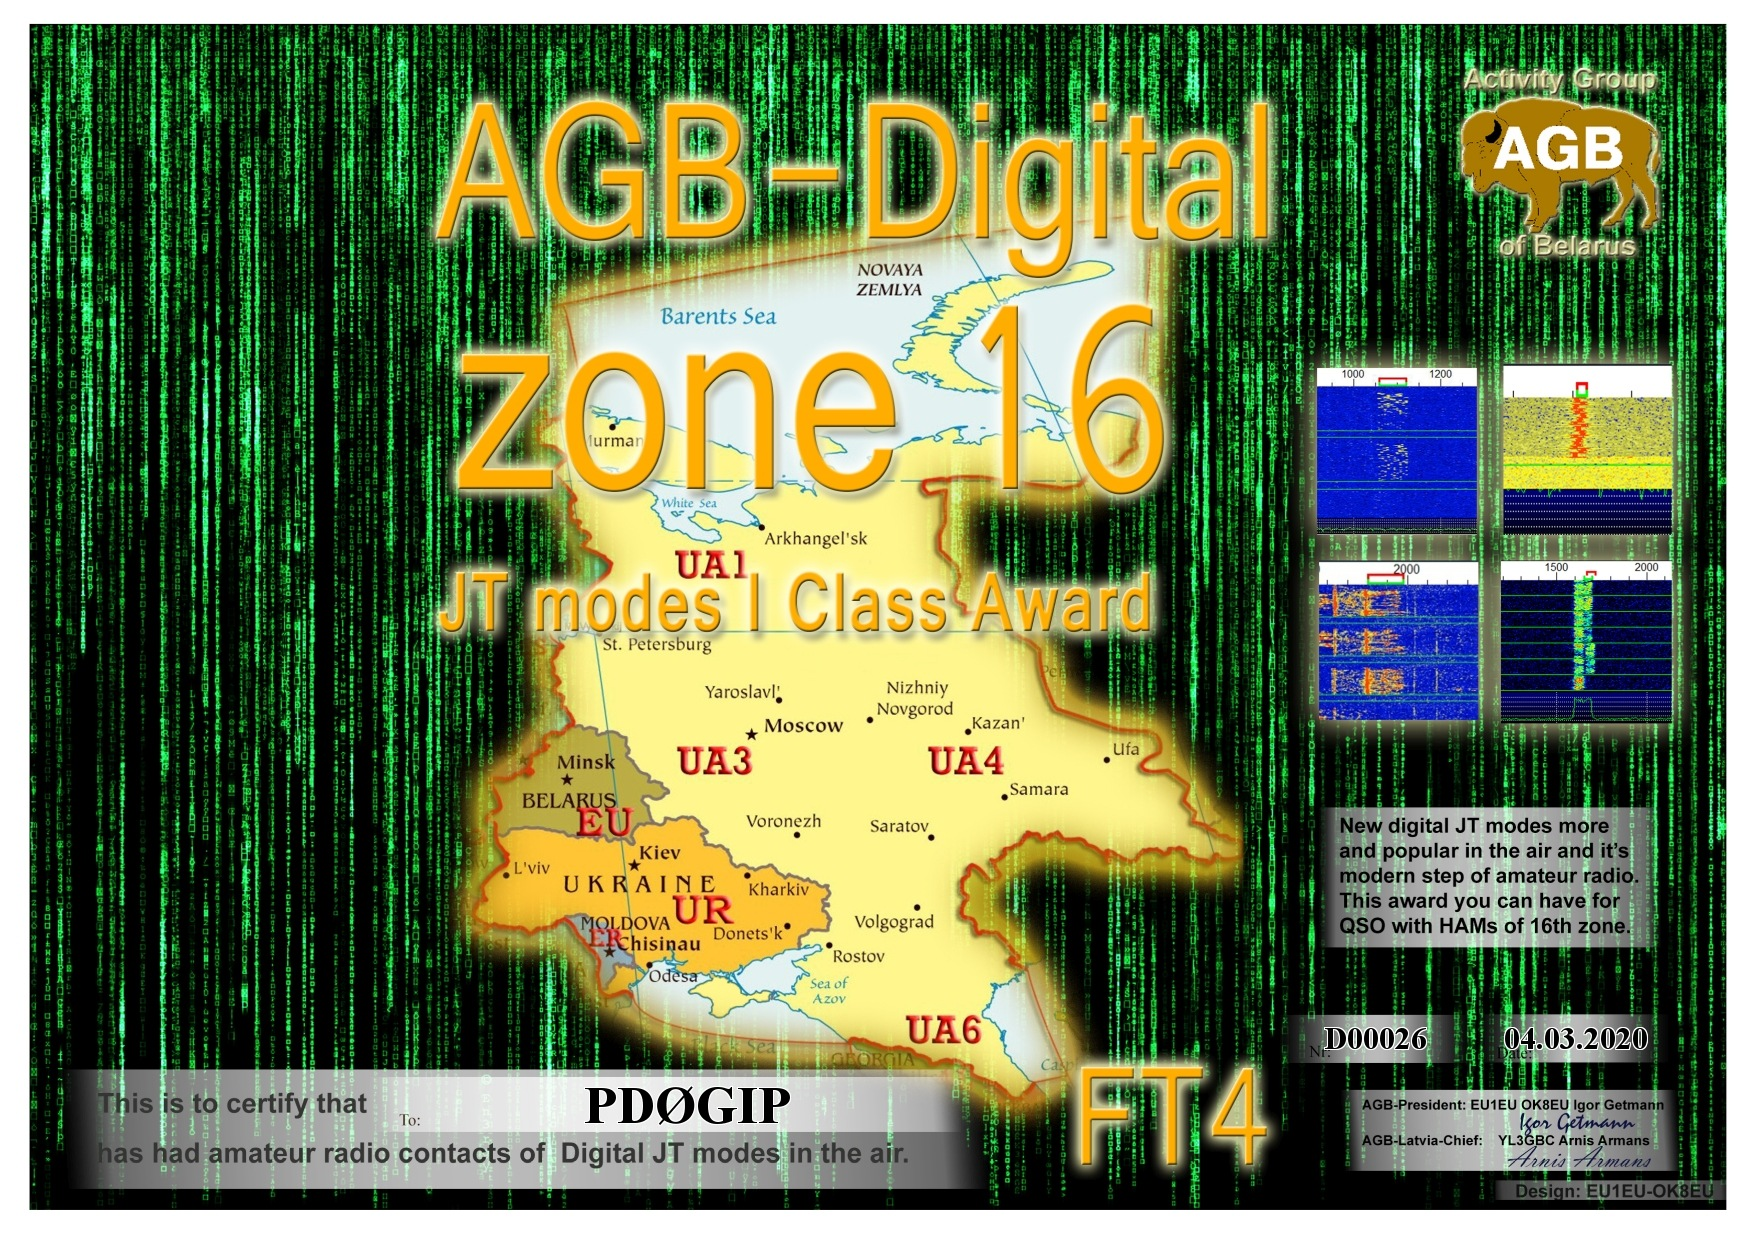 PD0GIP ZONE16 FT4 I AGB